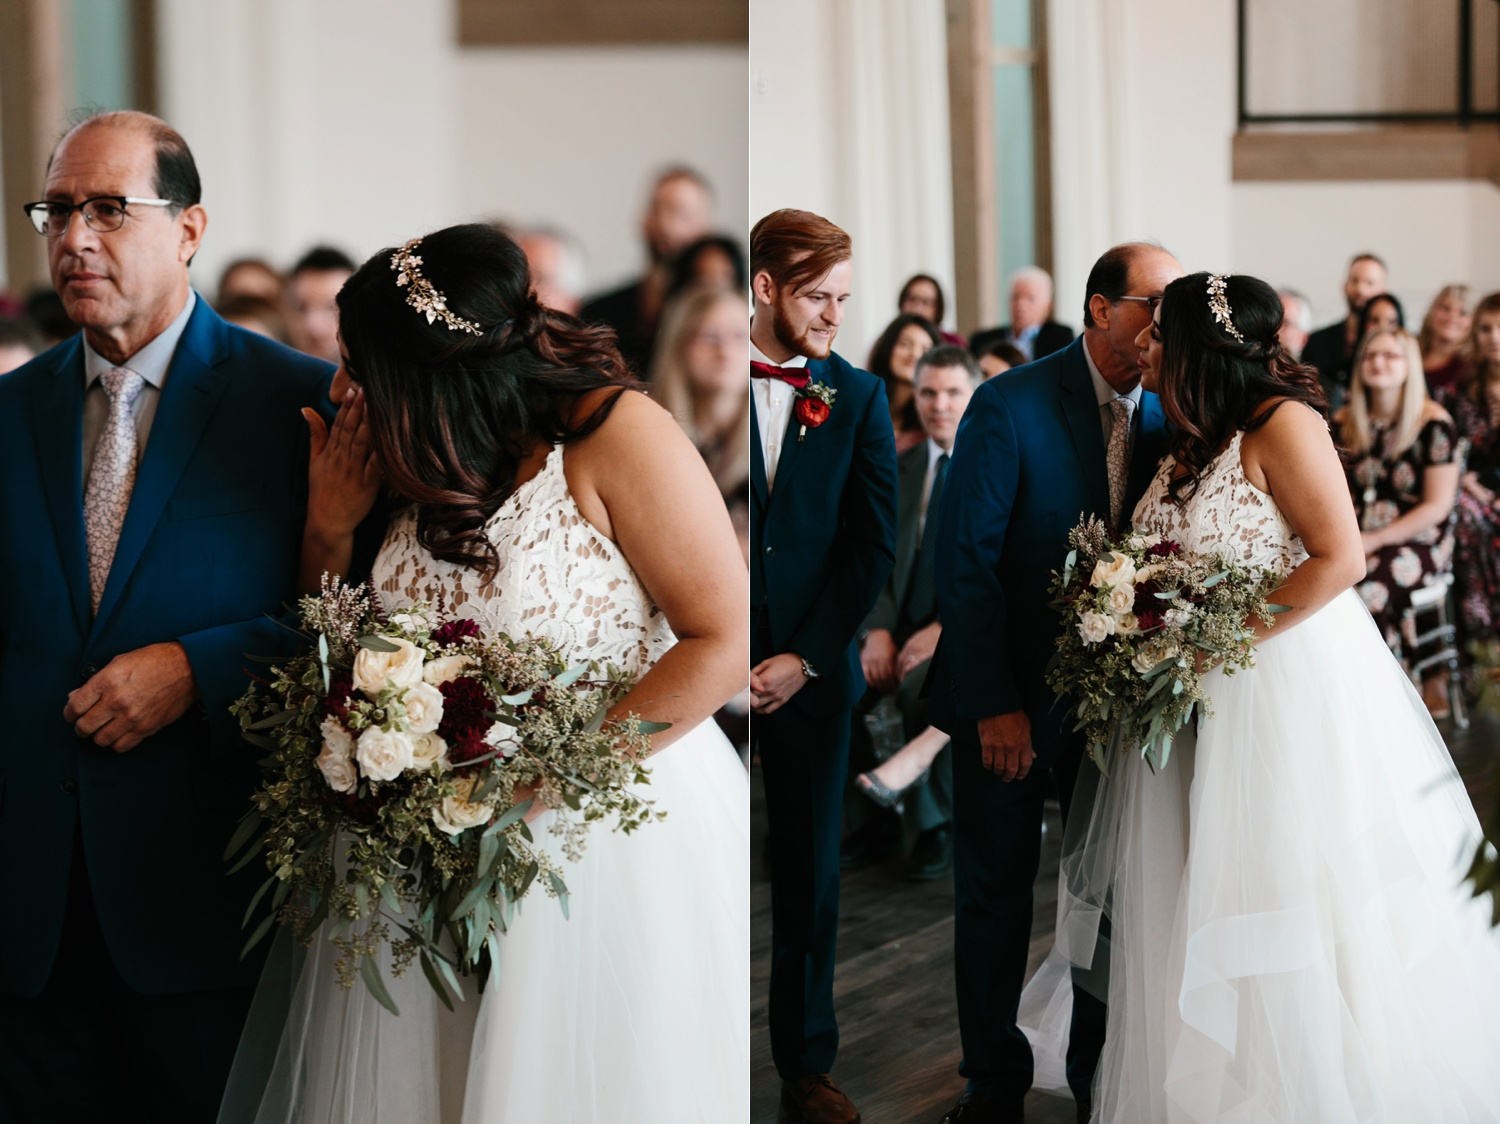 Grant + Lysette | a vibrant, deep burgundy and navy, and mixed metals wedding at Hidden Pines Chapel by North Texas Wedding Photographer Rachel Meagan Photography 066